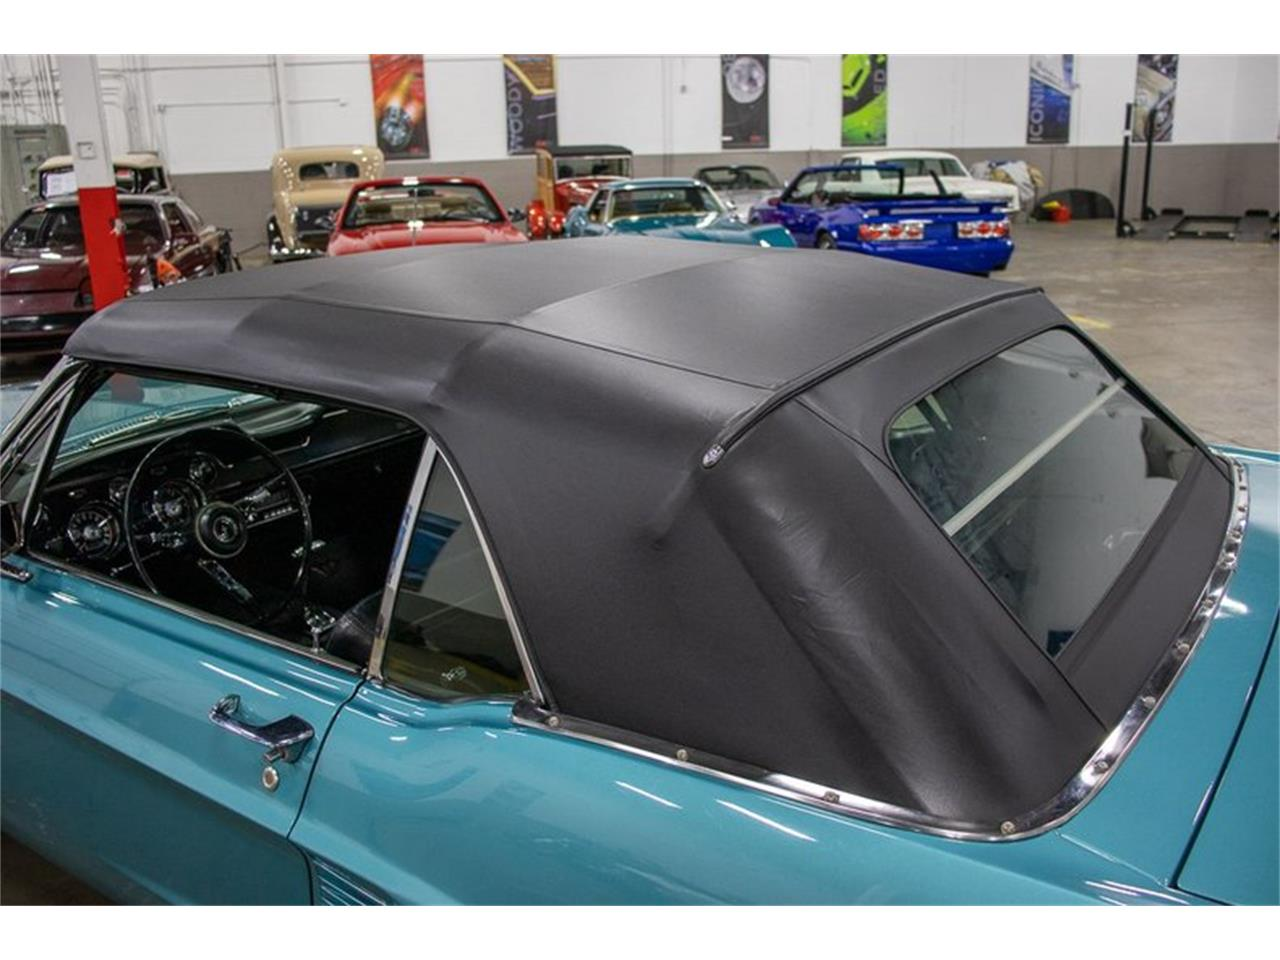 Ford Mustang Ford mustang code c cabriolet prix tout compris